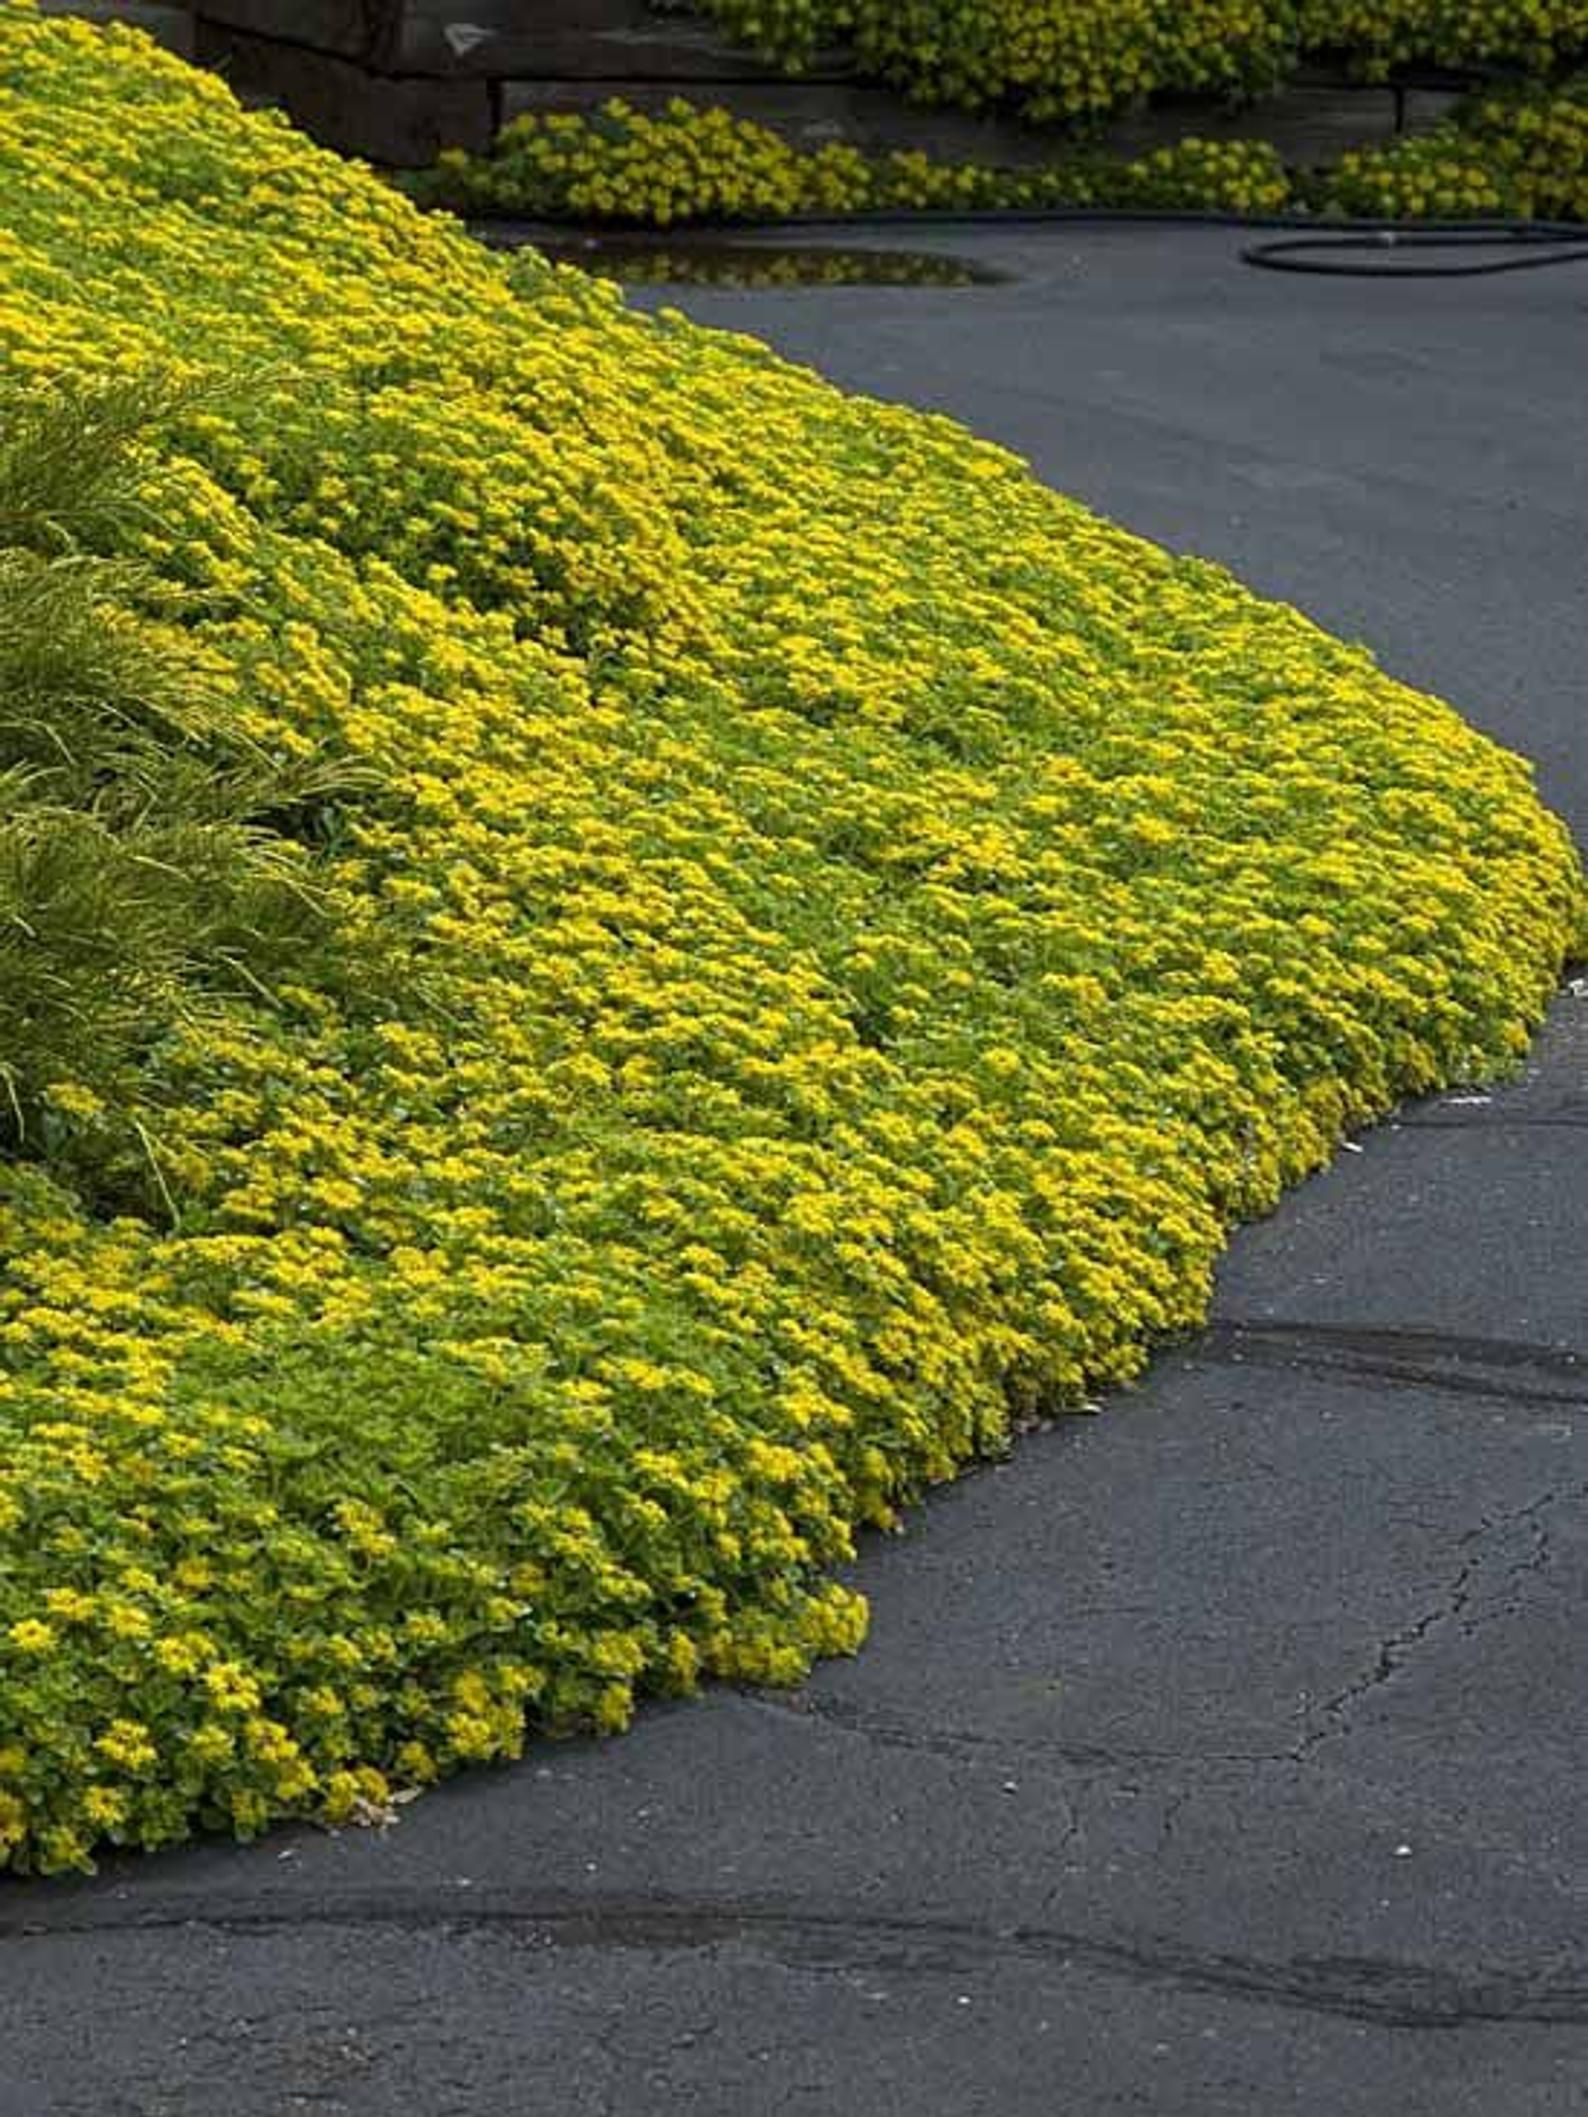 30 Sedum Yellow Ground Cover Aka Stonecrop Succulent Perennial Rosettes Flower Seeds Ground Cover Plants Ground Cover Hillside Landscaping